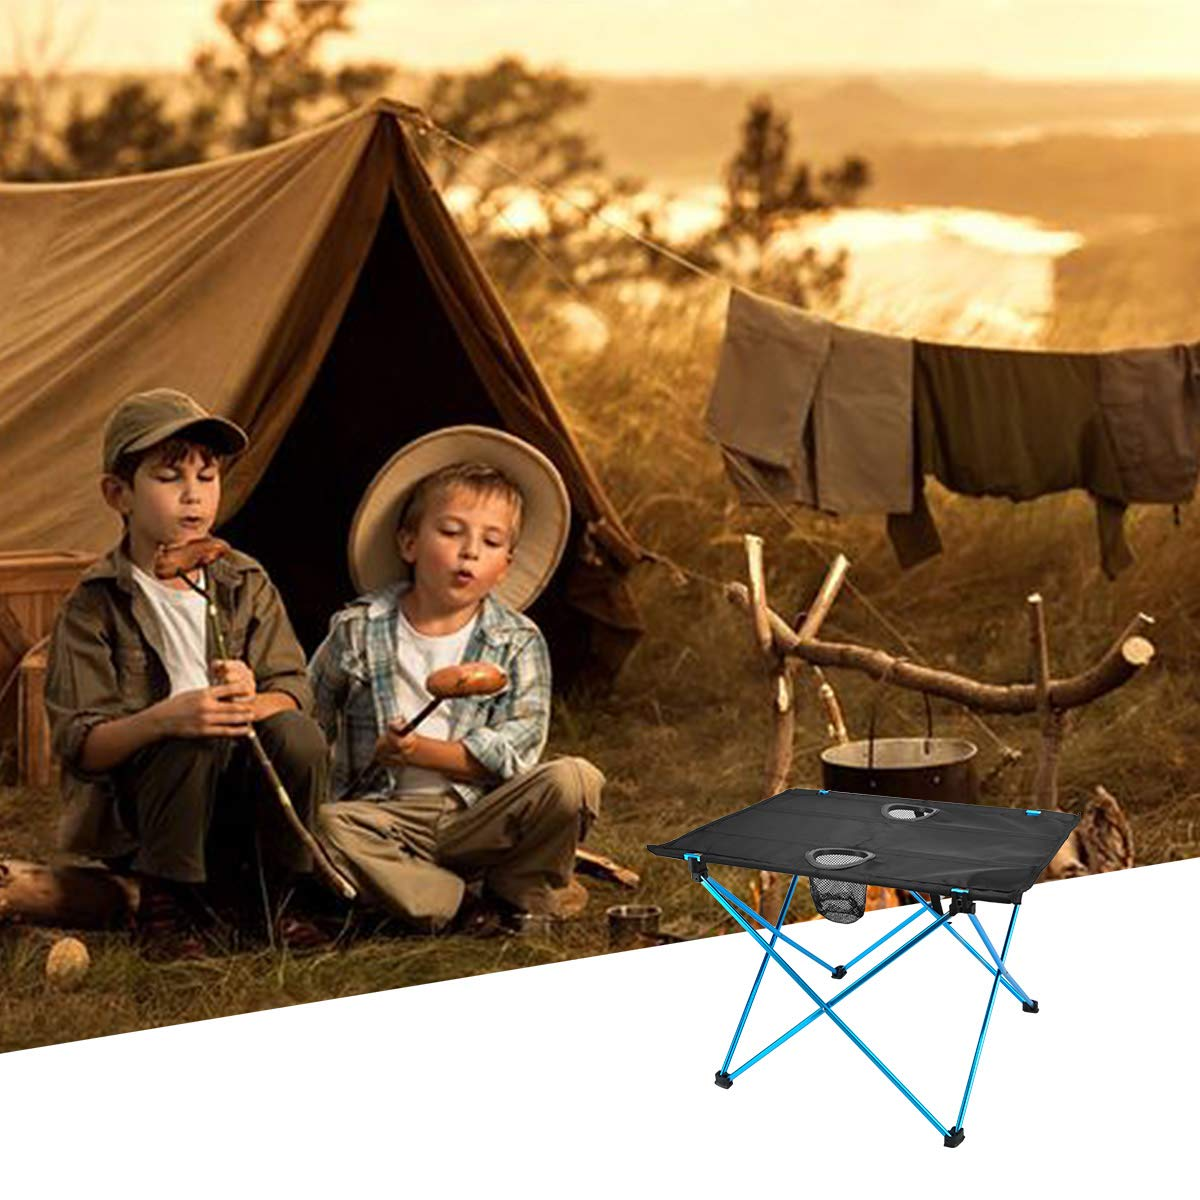 BBQ and Travel with Carry Bag for Picnic Beach YuCheng Portable Camping Side Table Camp Easy to Clean Fold Up Lightweight